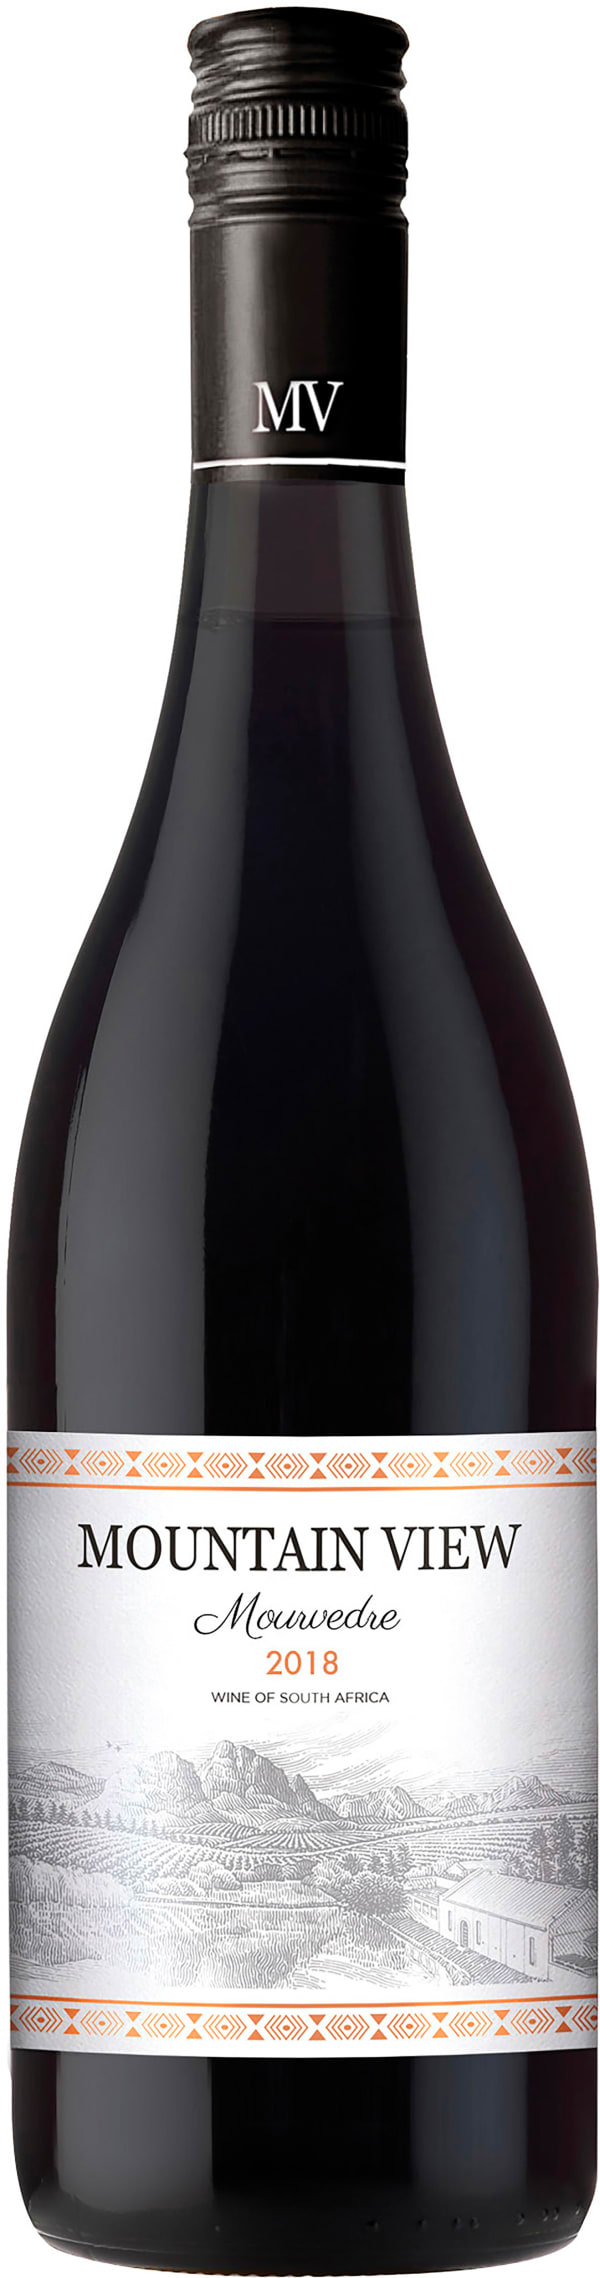 Mountain View Mourvedre 2019